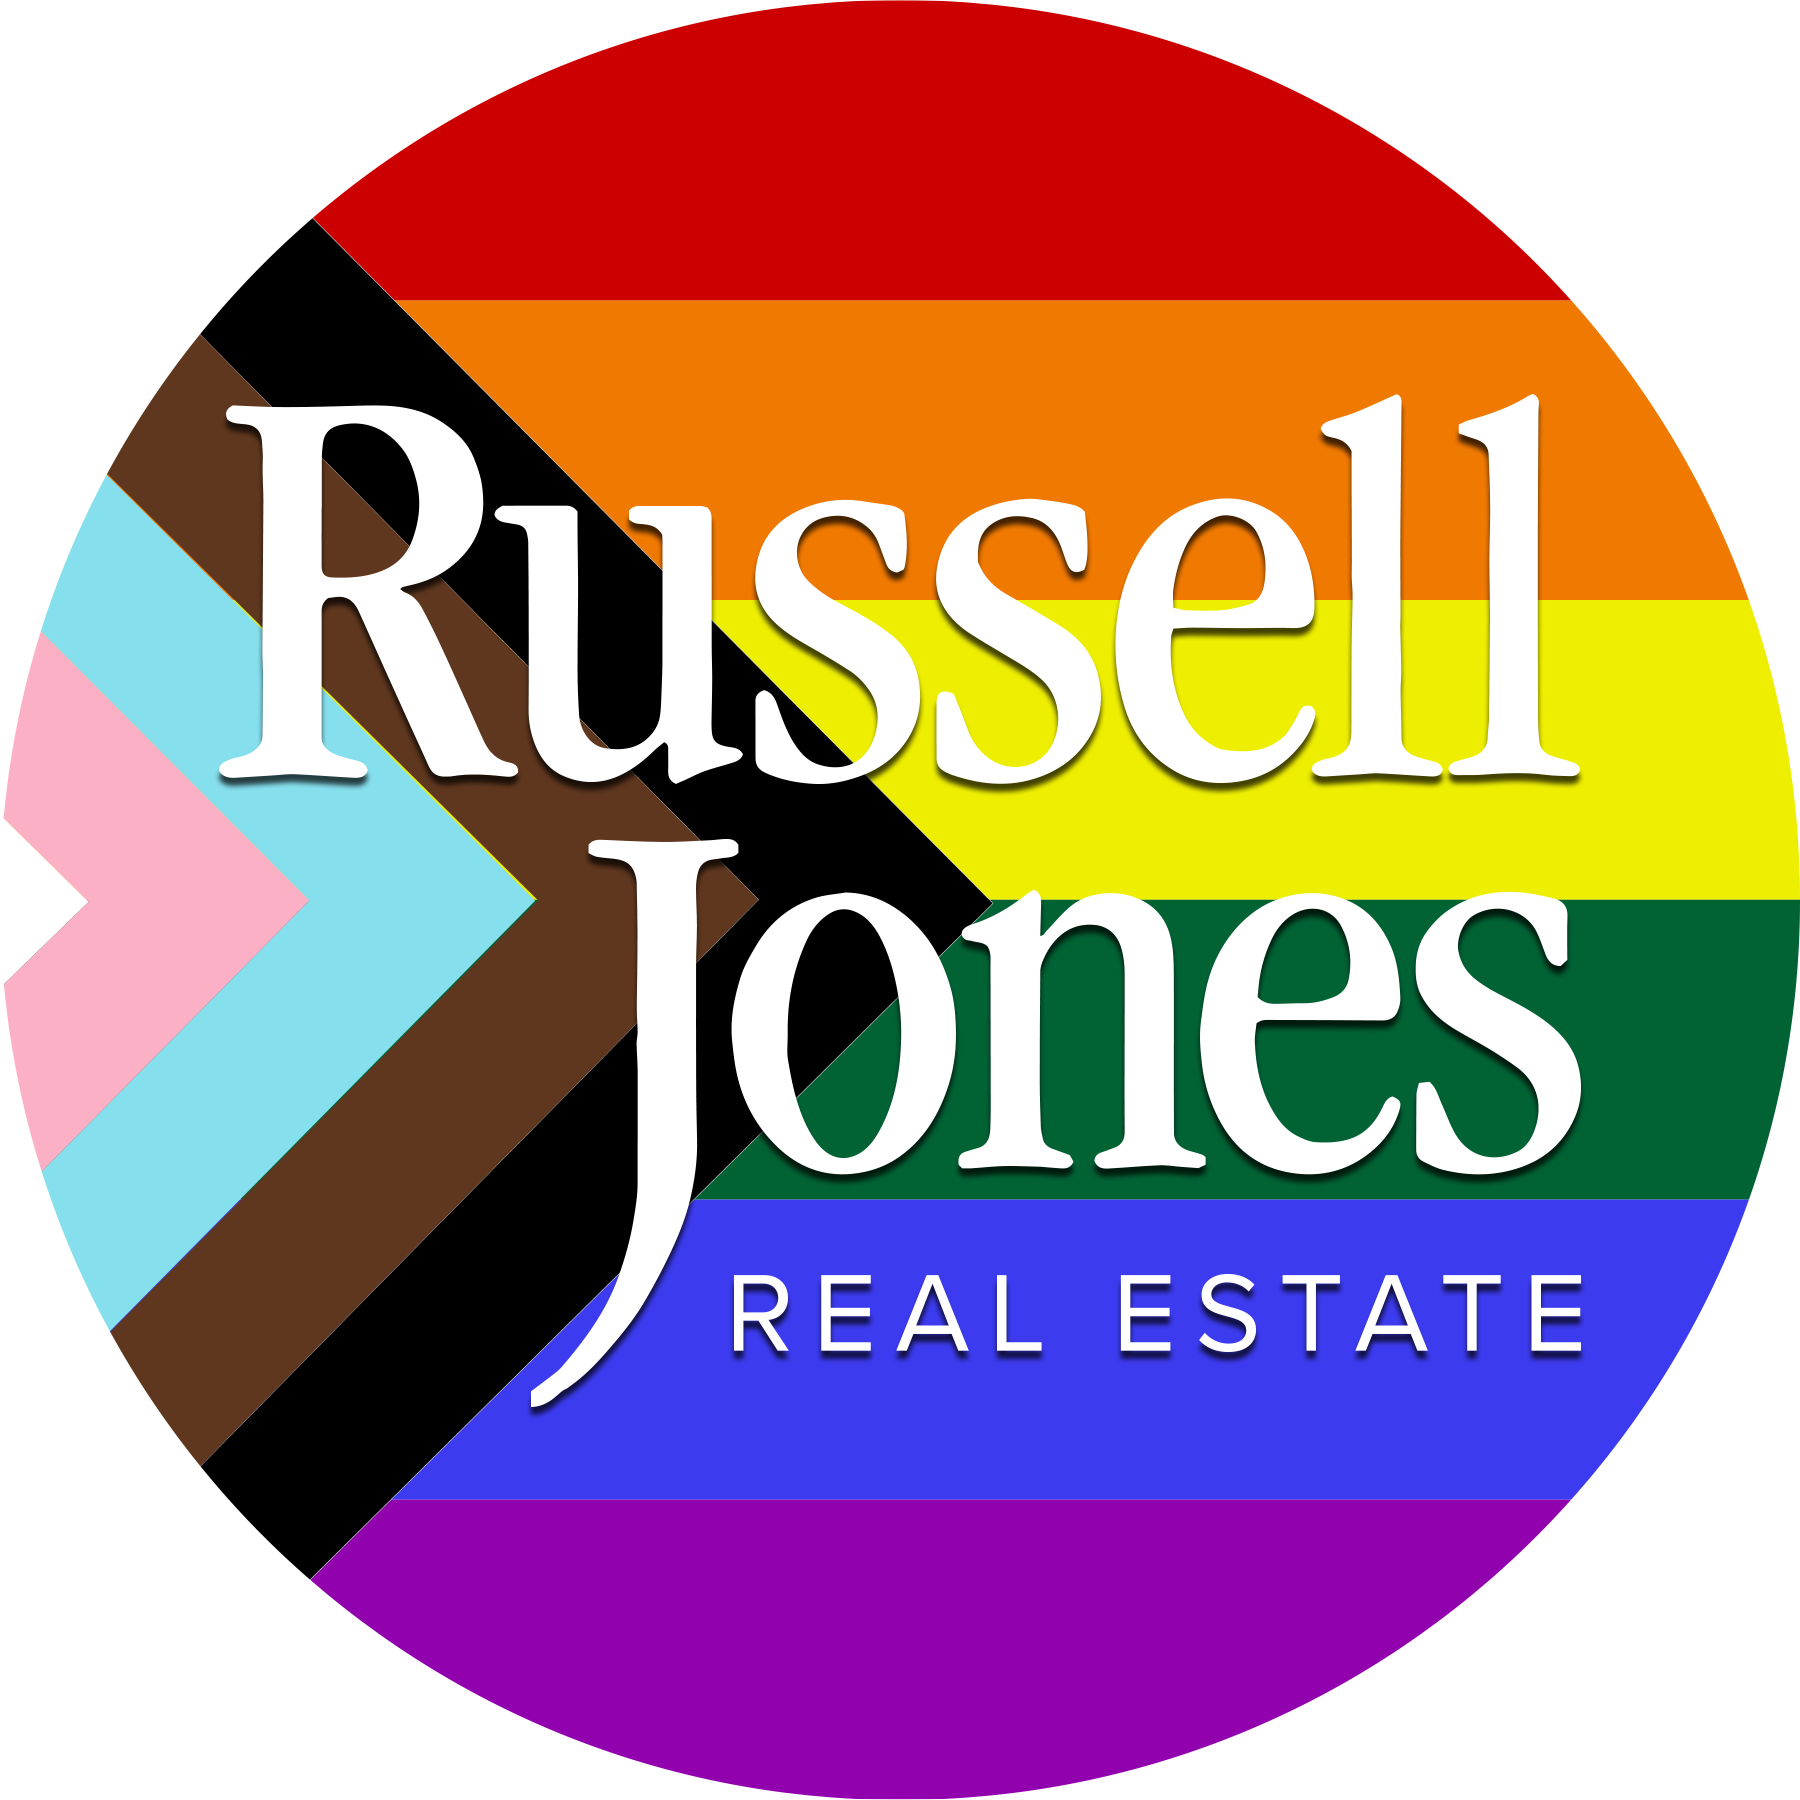 Russell Jones Real Estate BIPOC LGBTQ logo